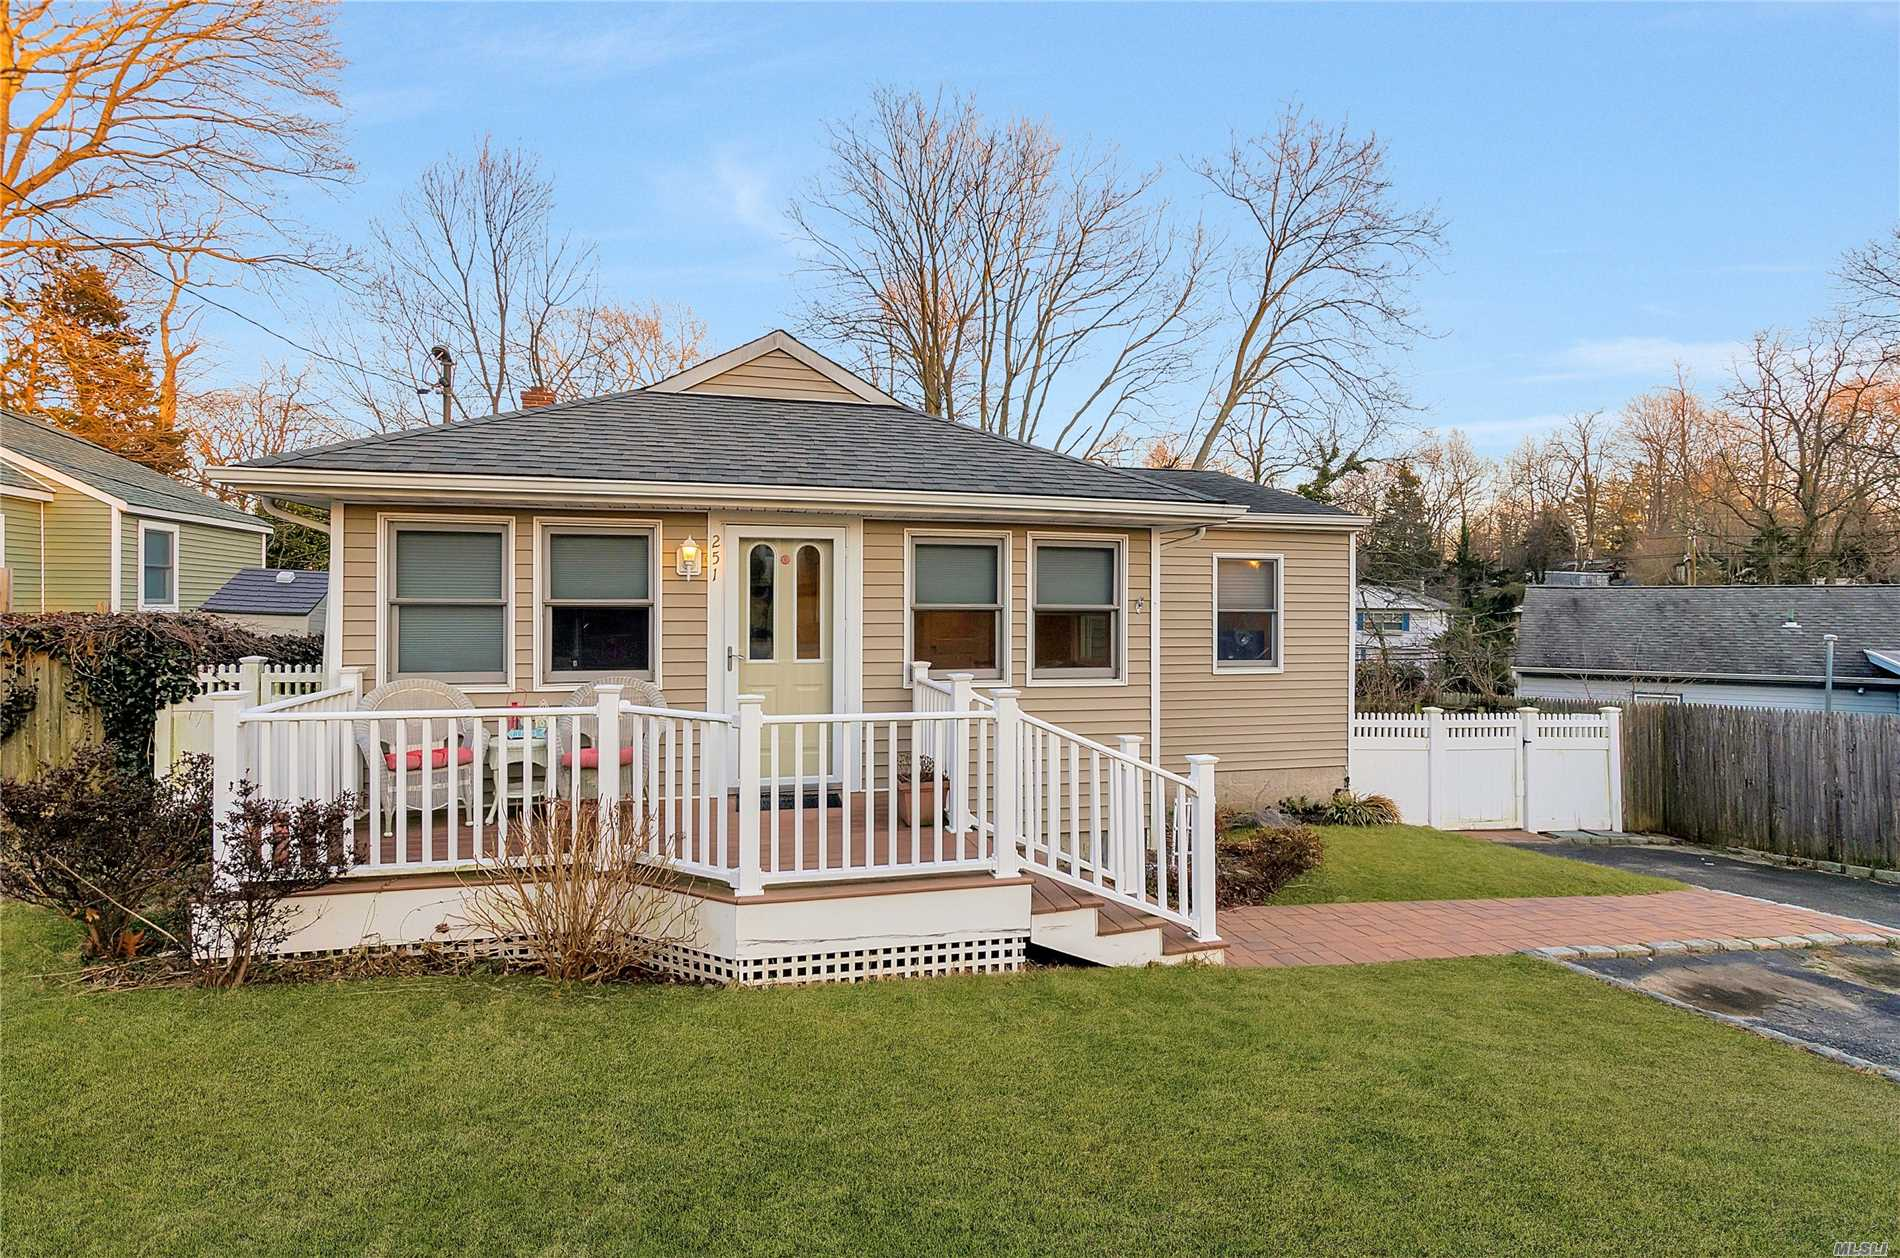 Beautiful Ranch Features: Spacious Open Floor Plan, Living Room With Fireplace, Kitchen With Dining Area, 3 Bedrooms, 2 Full Baths, Laundry Room/ Office Area,  Full Basement With Inside/Outside Entrance, Utilities.